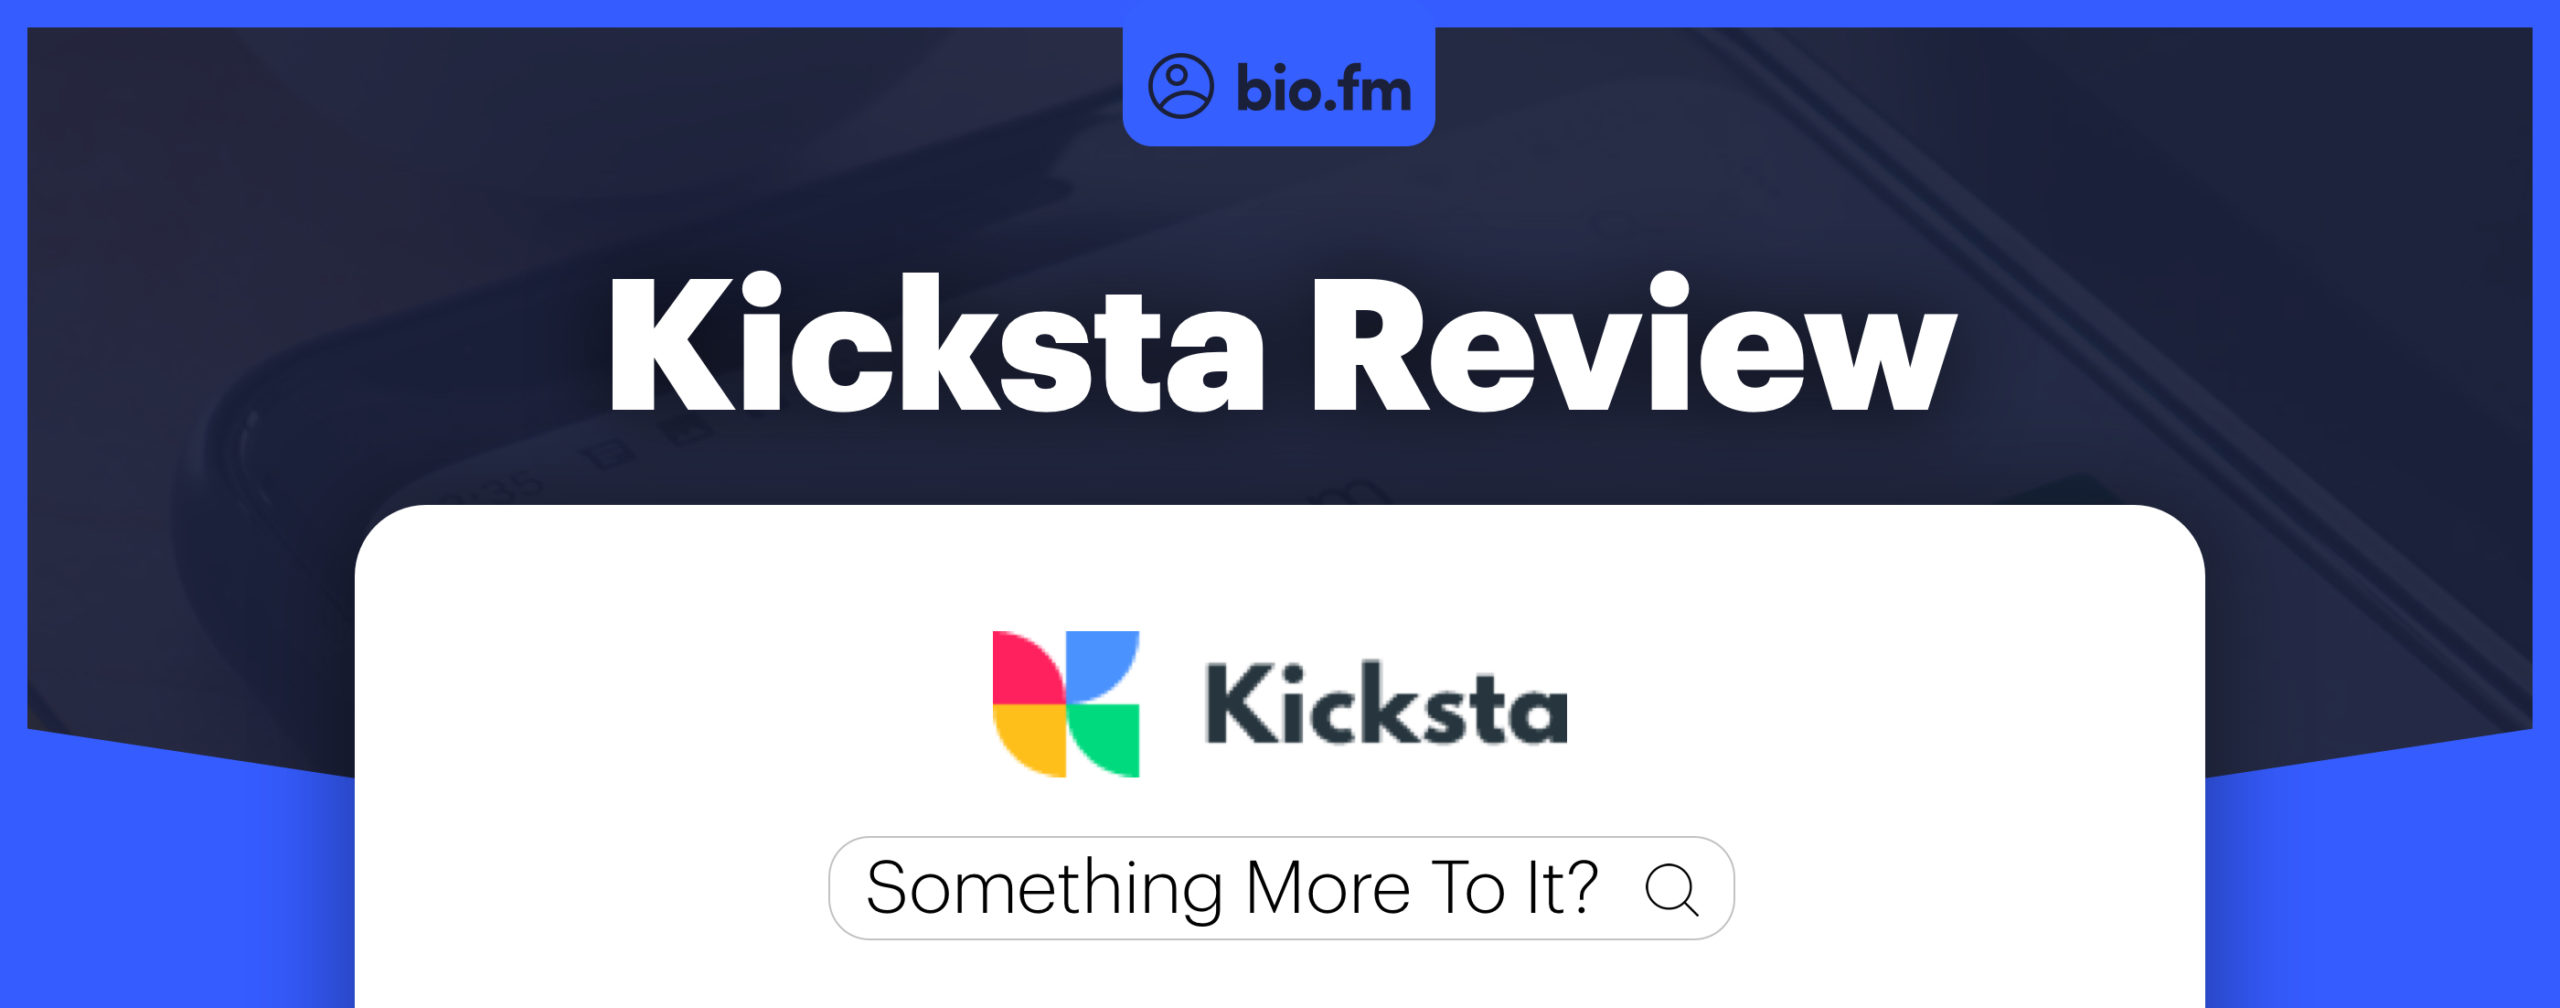 kicksta review featured image